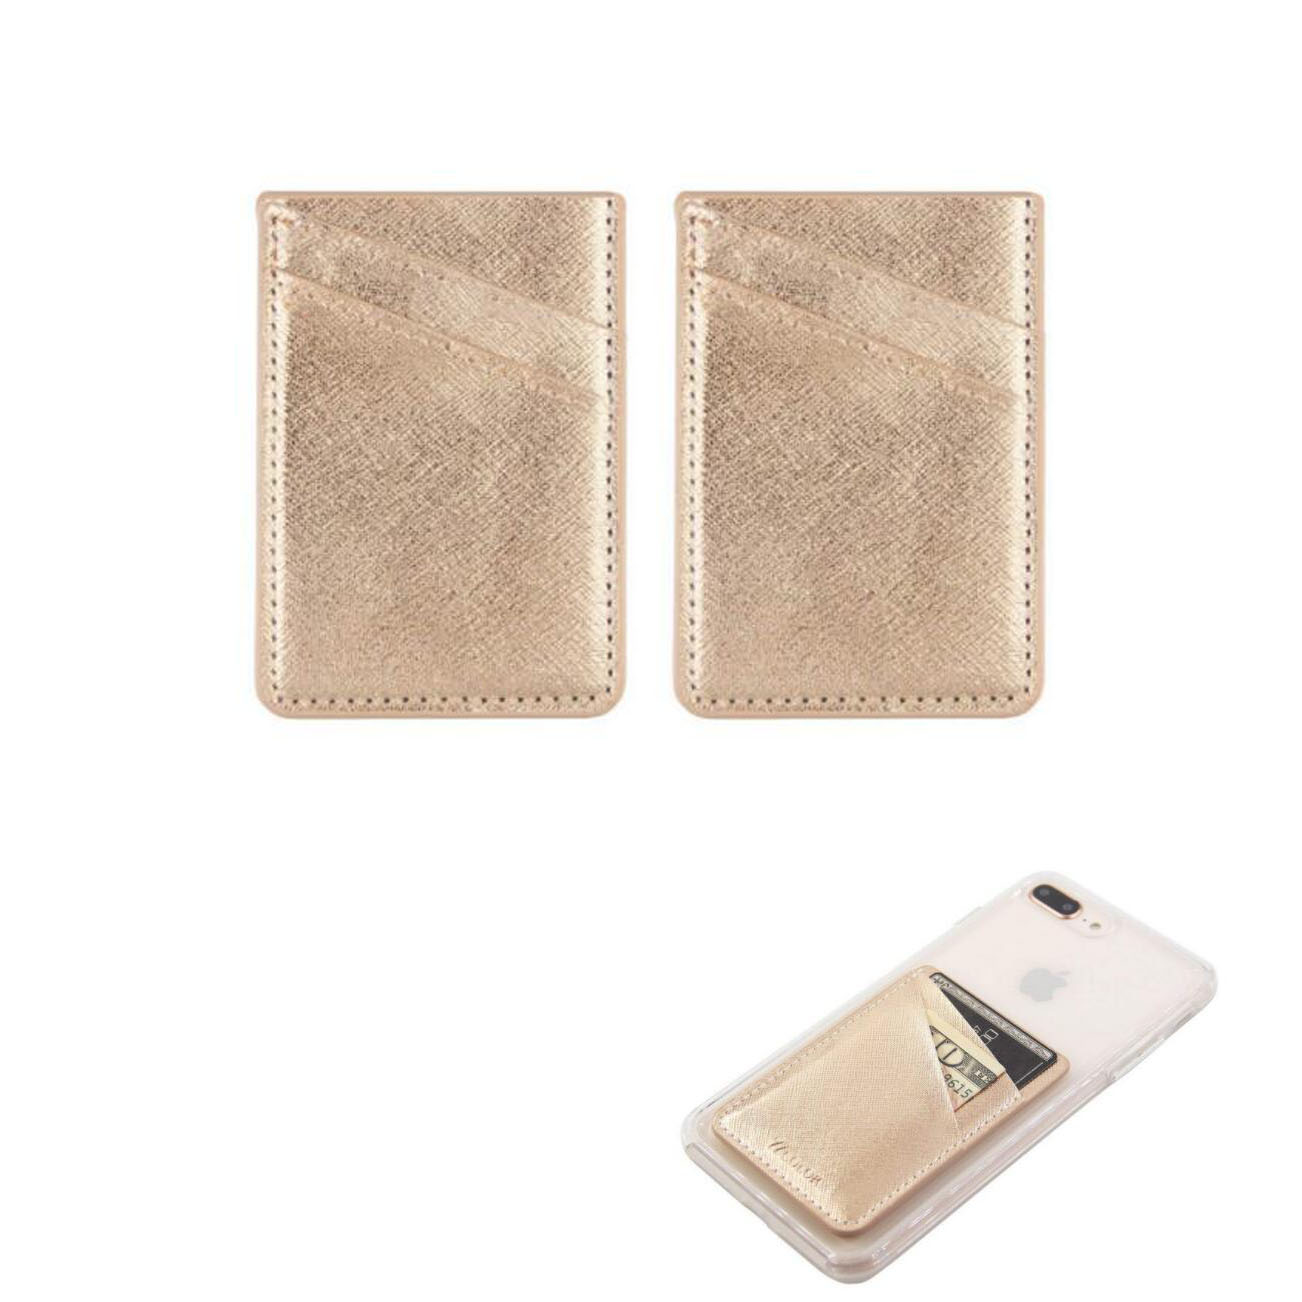 GL-AAA1351 Glitter Leatherete Adhesive Cell Phone Wallet Double Layer